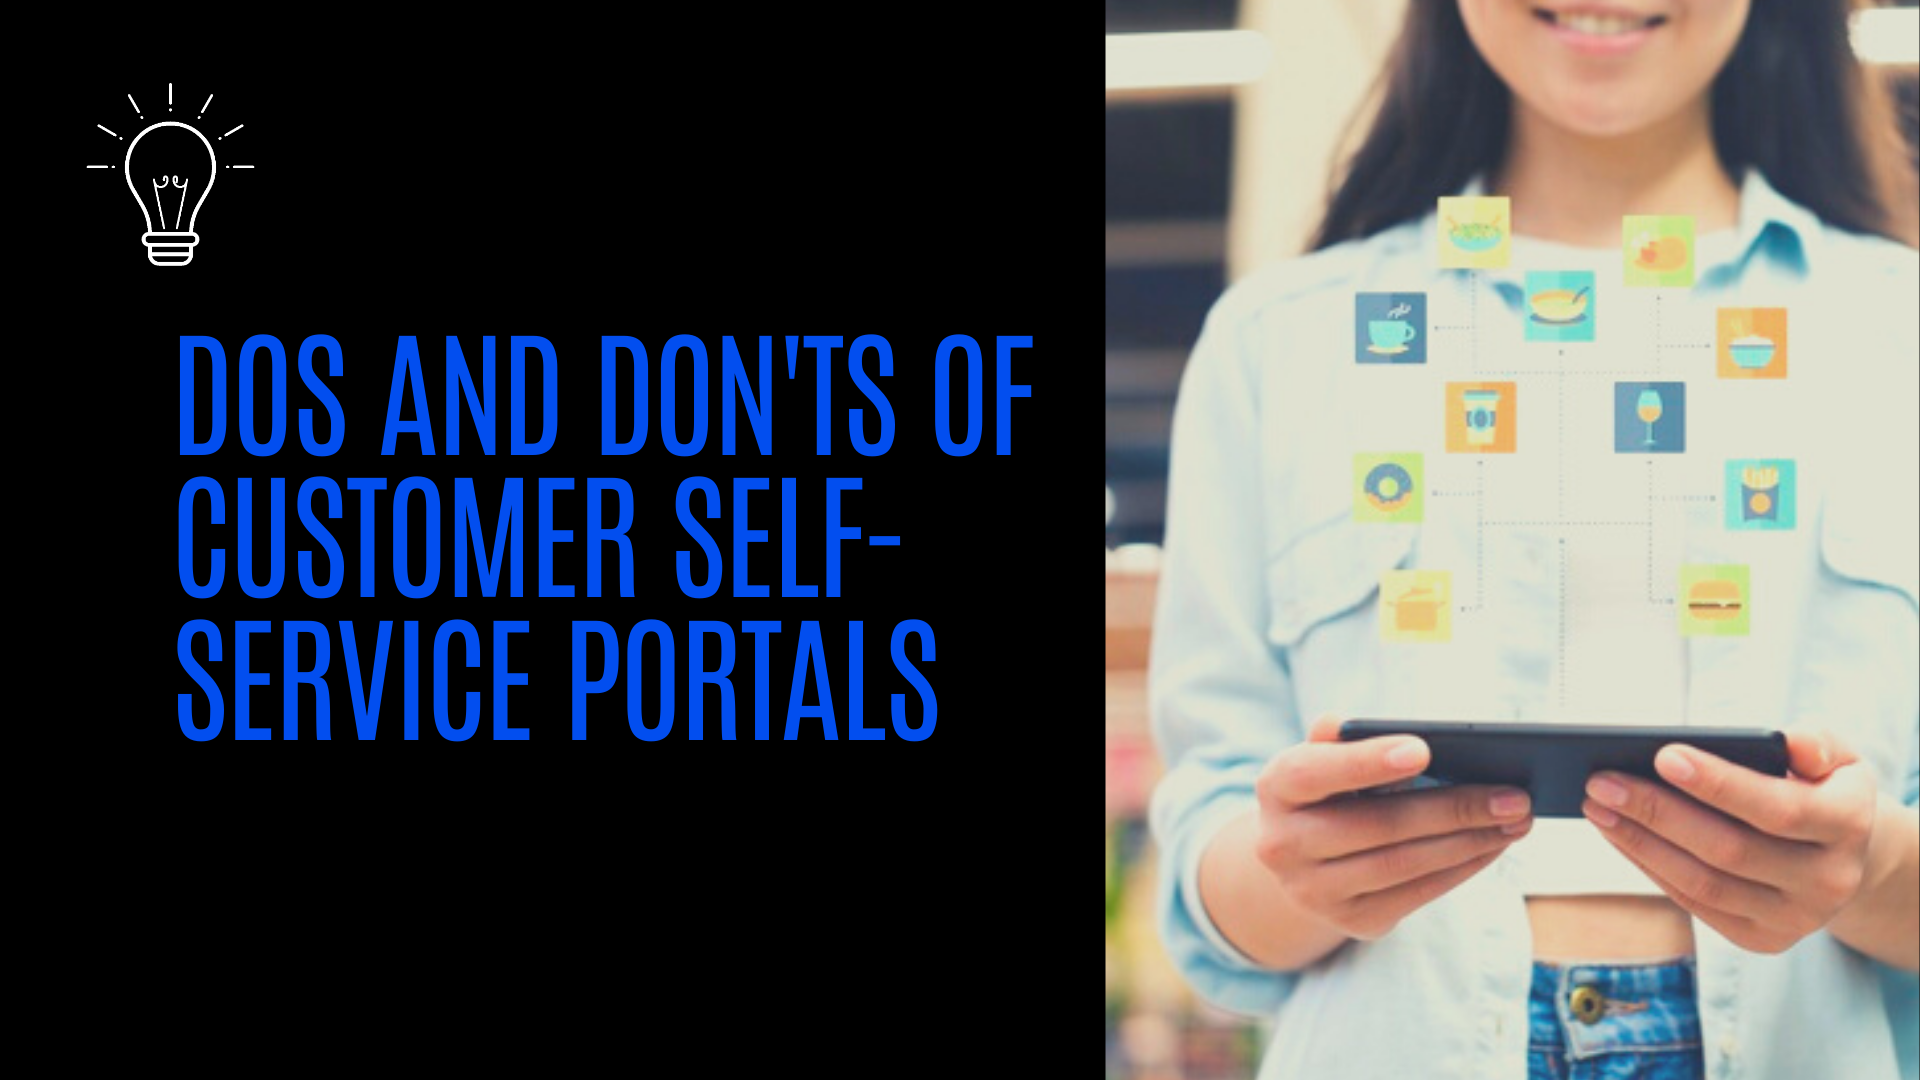 Dos and Don'ts of Customer Self-Service Portals